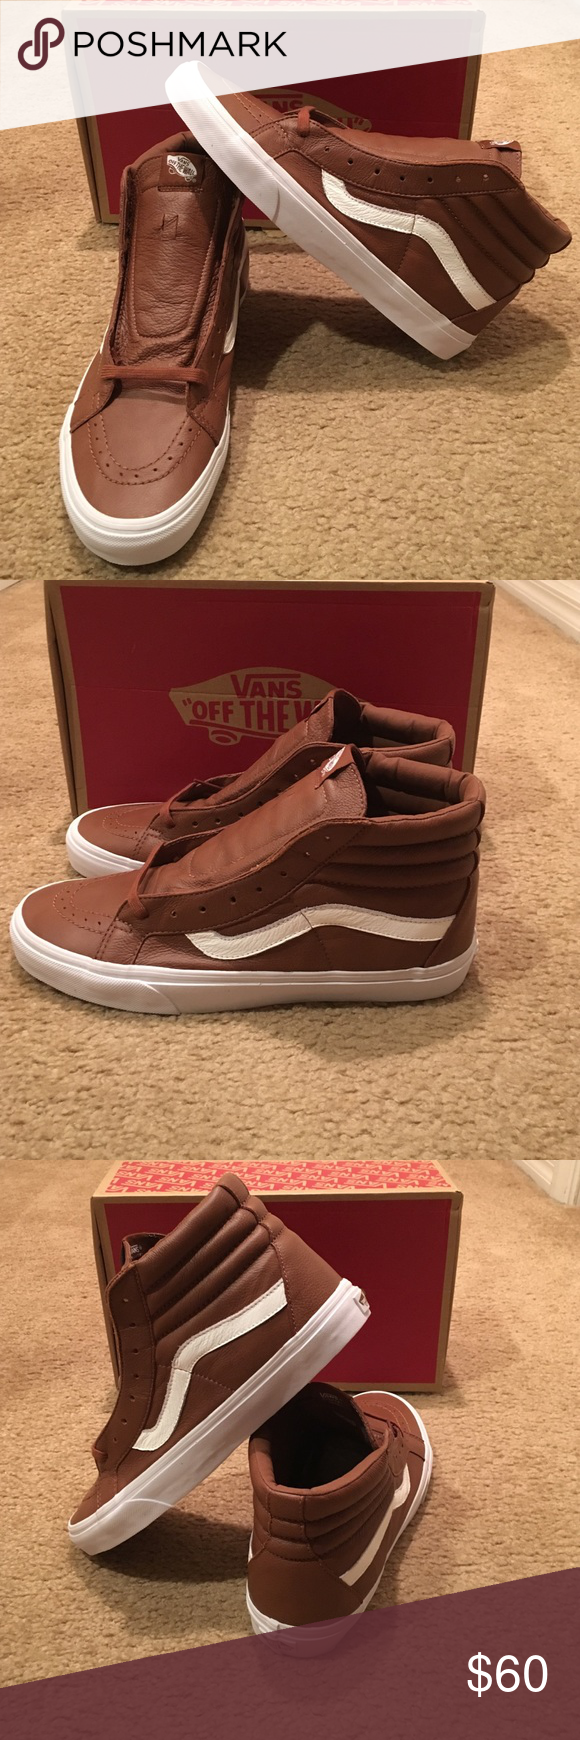 a49fde3431bbf3 Vans SK8-Hi Reissue Premium Leather Sneakers New in box. Unisex. Tortoise  Shell White Vans Shoes Sneakers